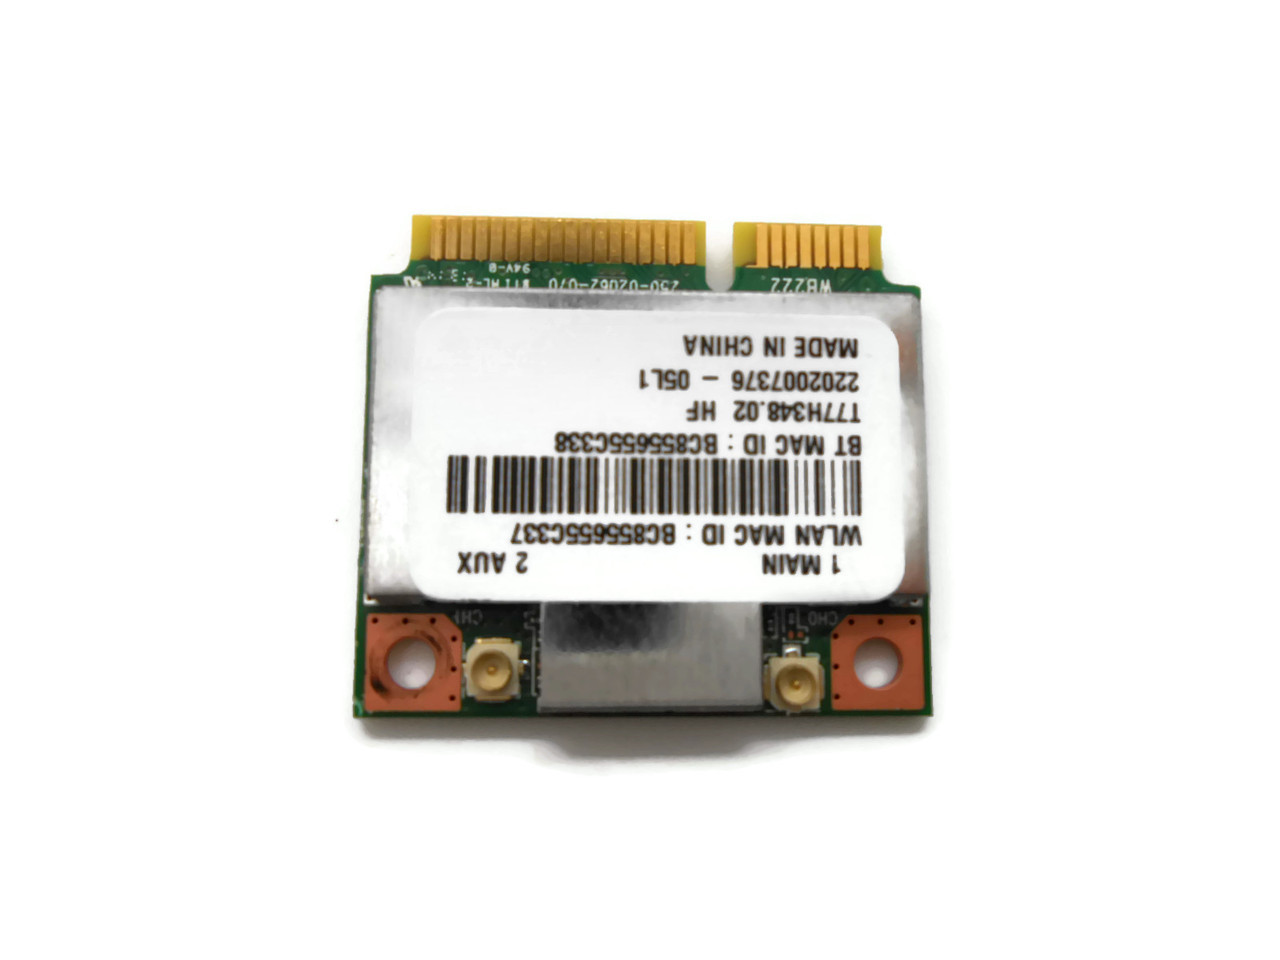 Acer Aspire F5-571 Atheros WLAN/Bluetooth Drivers for PC